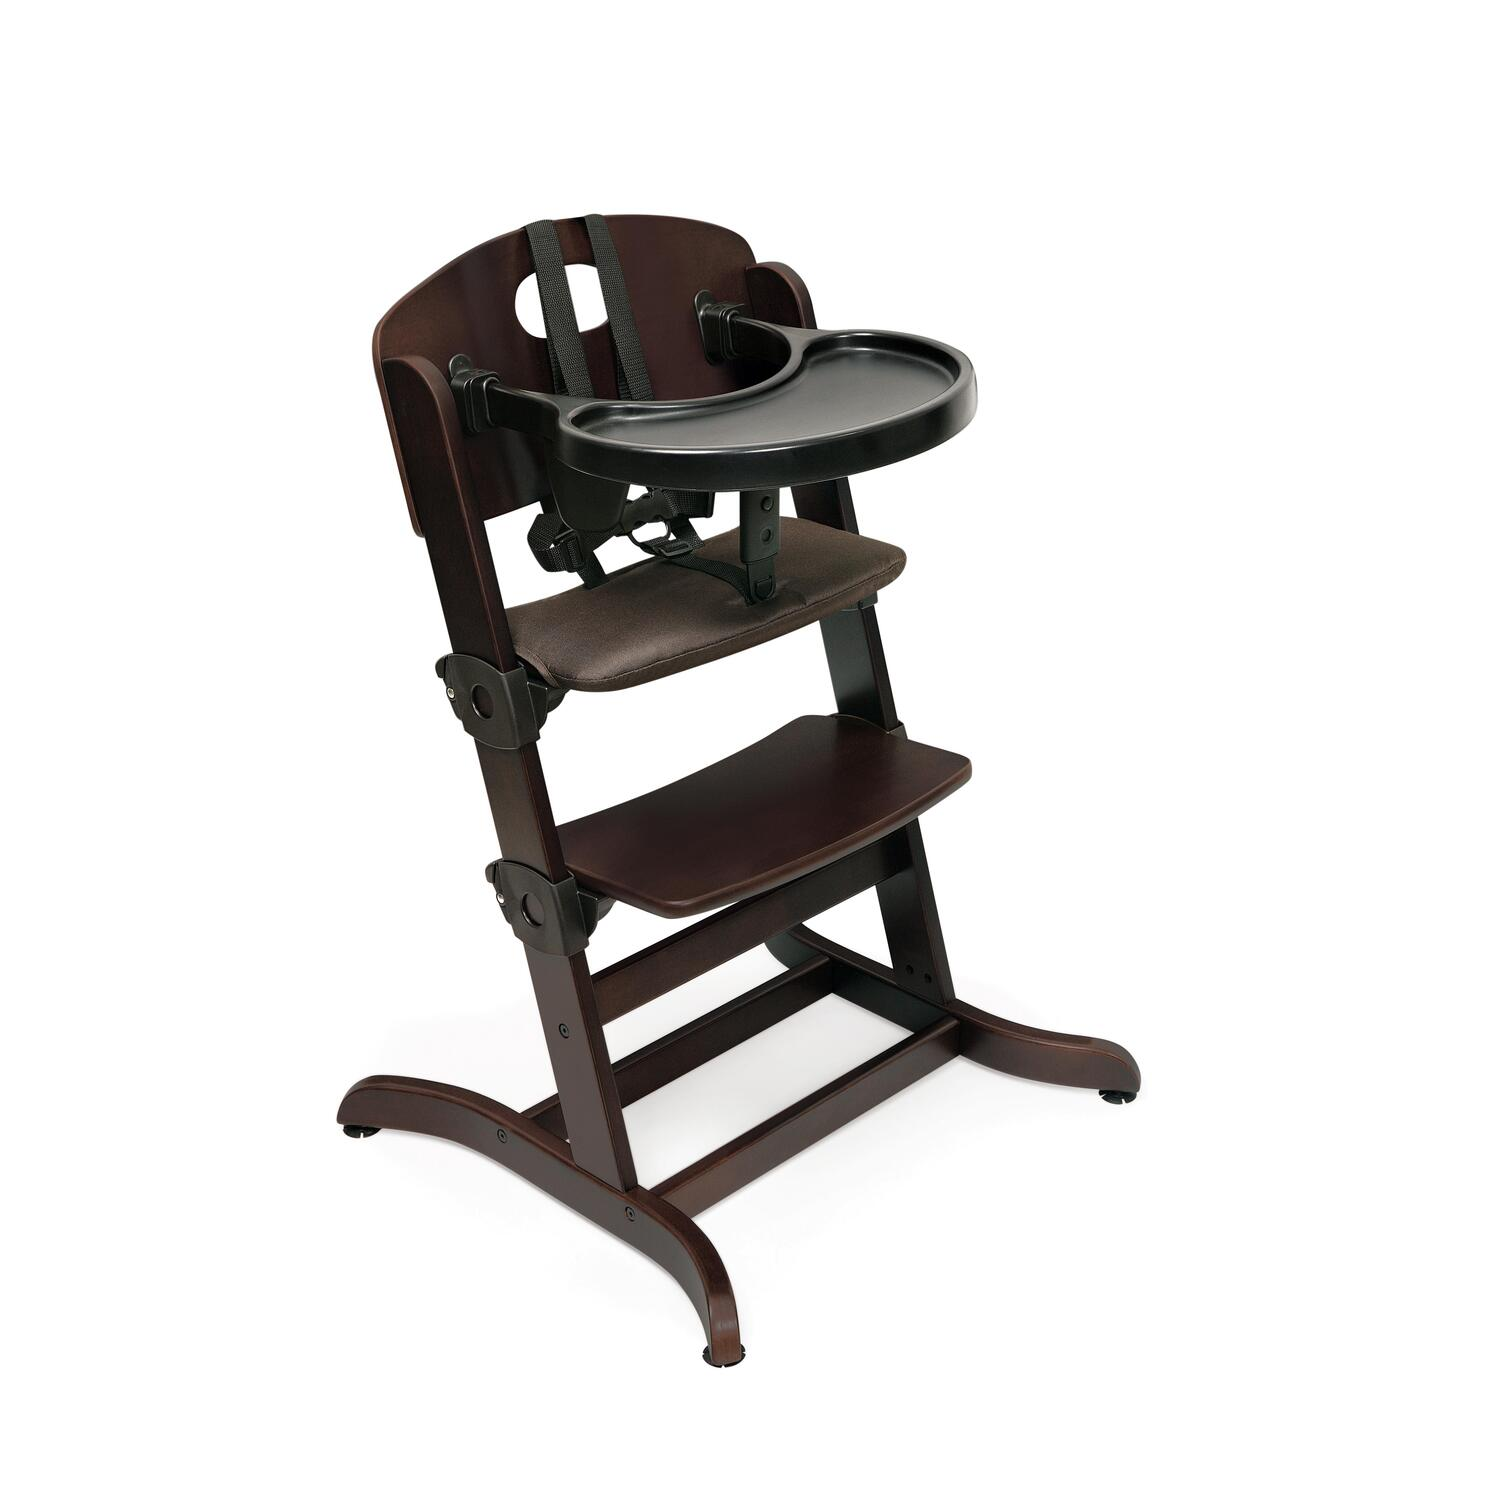 badger basket evolve wood high chair with tray by oj commerce. Black Bedroom Furniture Sets. Home Design Ideas